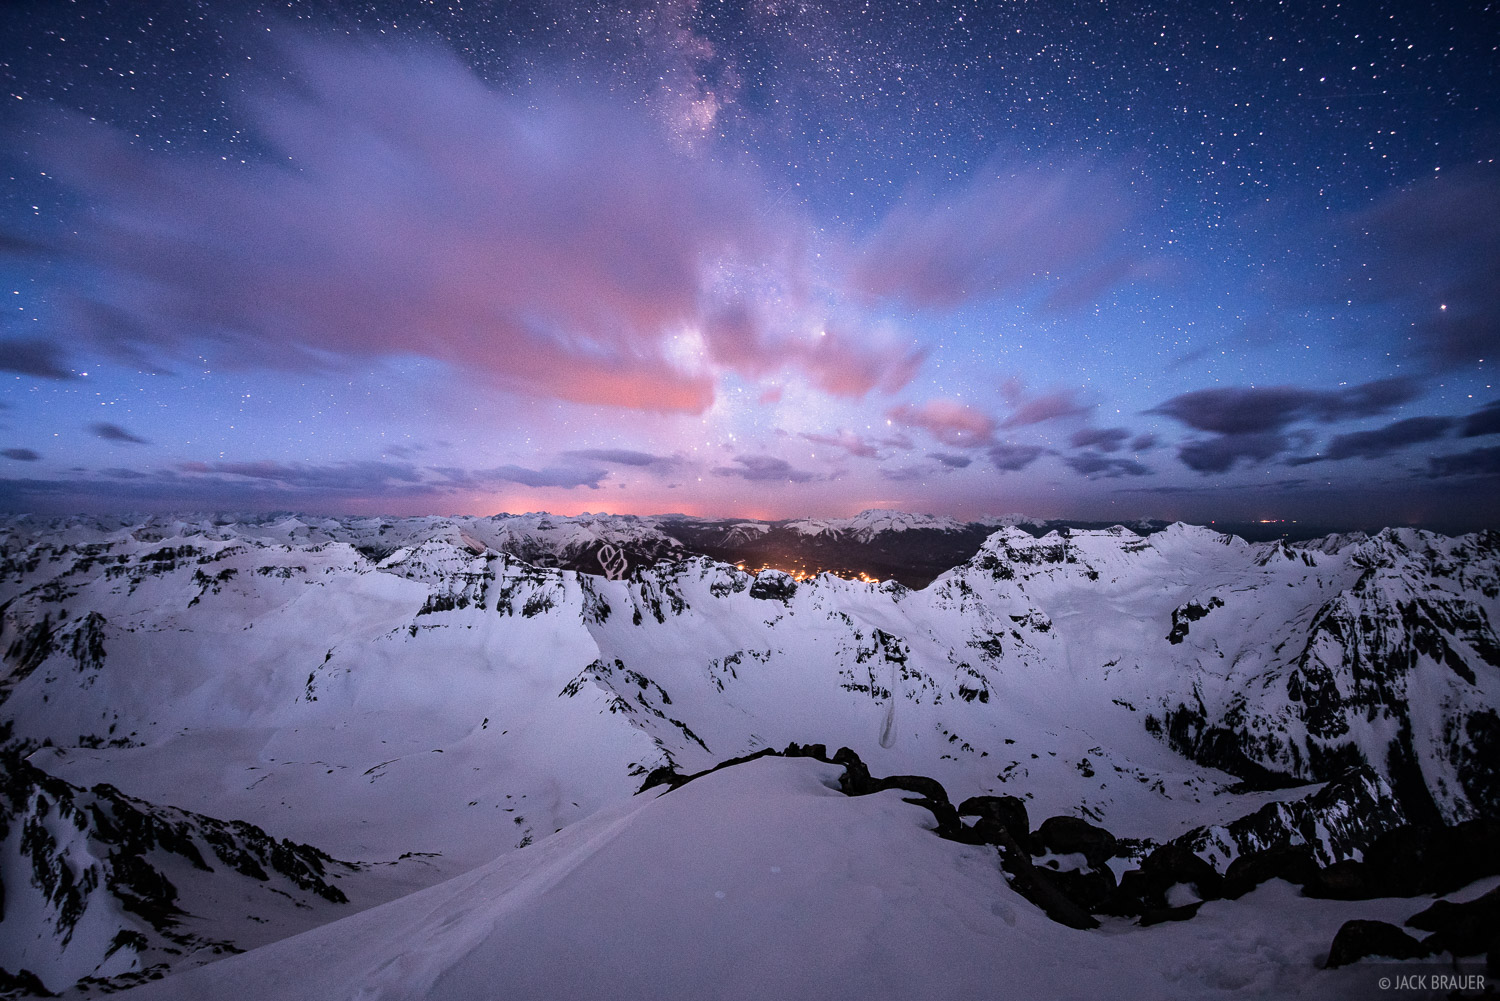 Colorado, Mt. Sneffels, San Juan Mountains, Sneffels Range, Telluride, dawn, Milky Way, stars, summit, photo